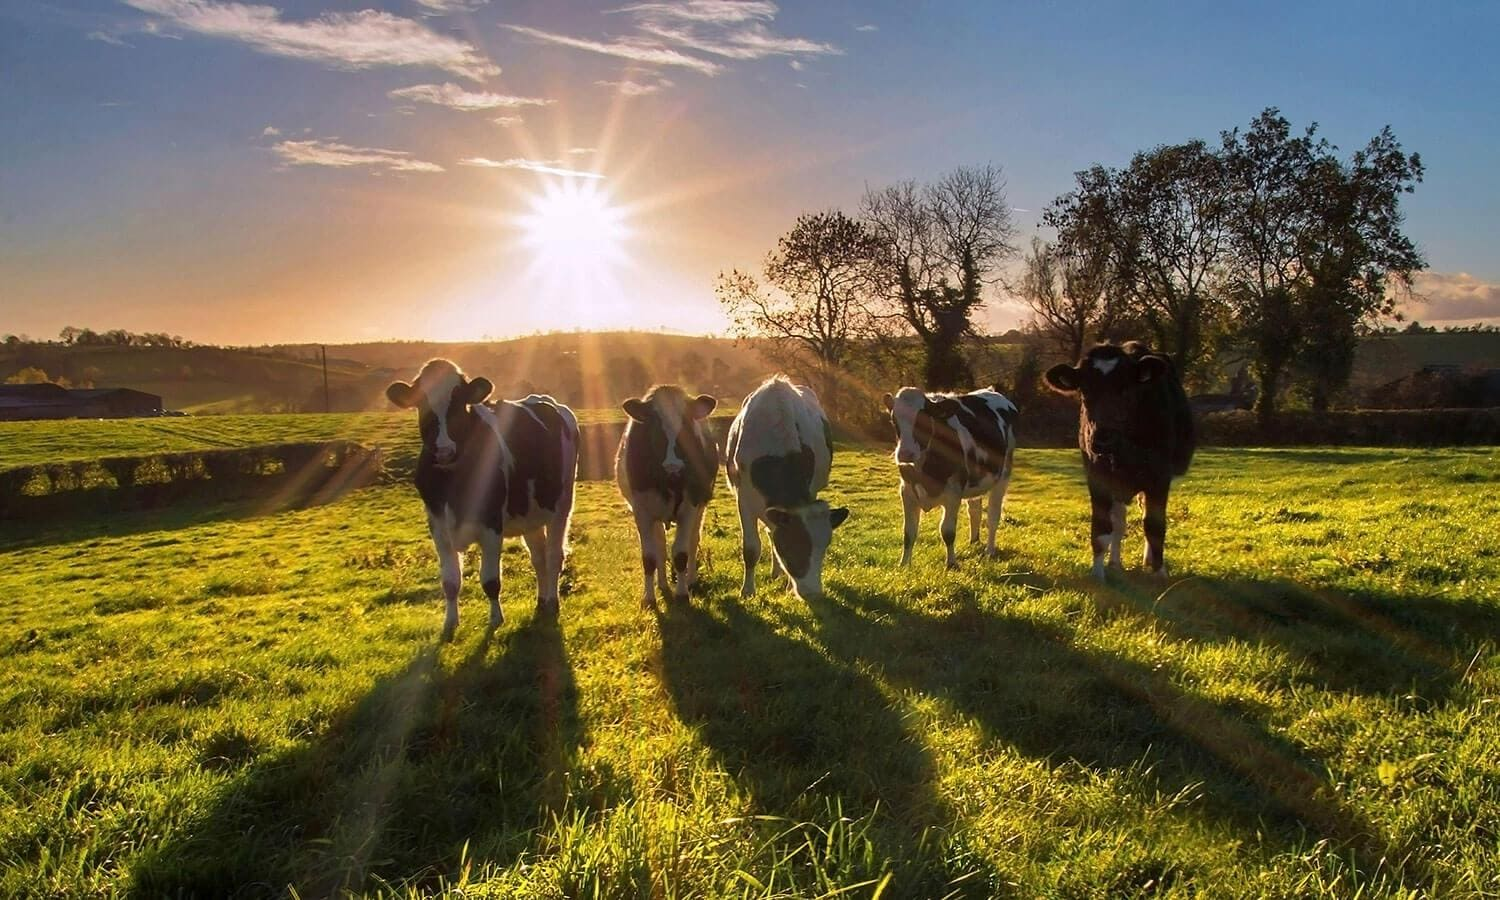 Five cows standing on pasture at sunset